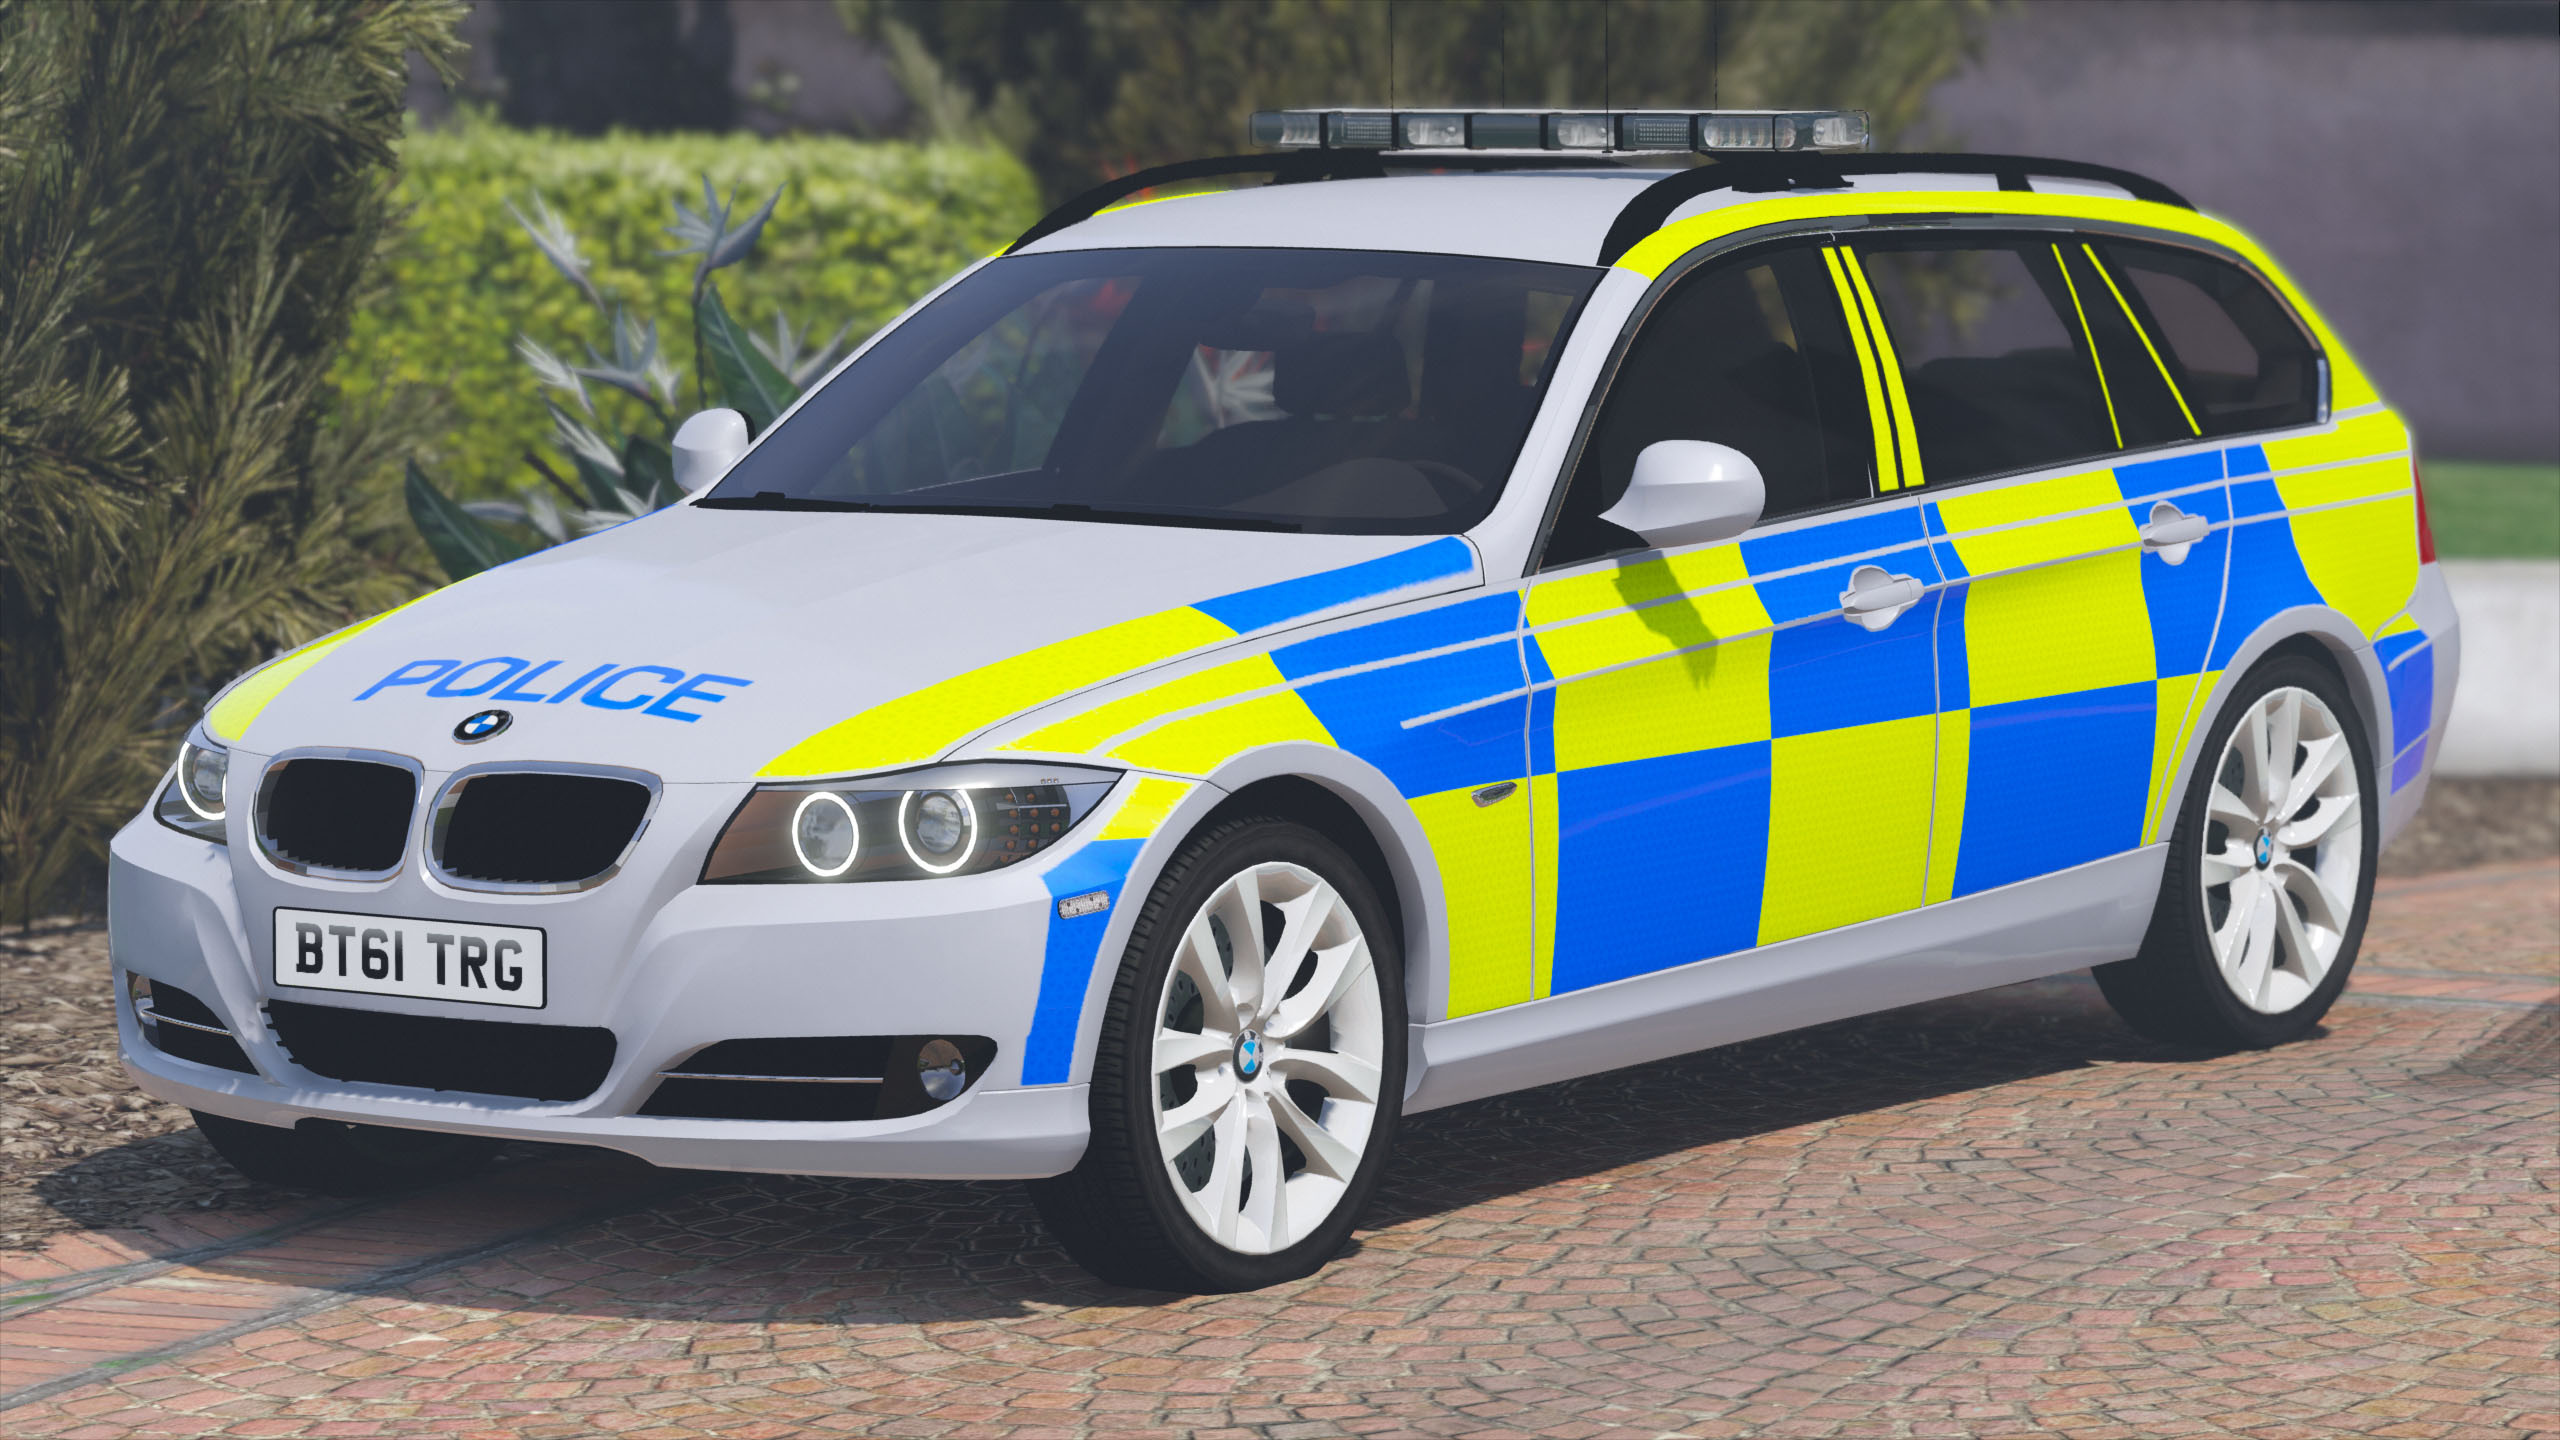 2011 police bmw 330d touring gta5. Black Bedroom Furniture Sets. Home Design Ideas